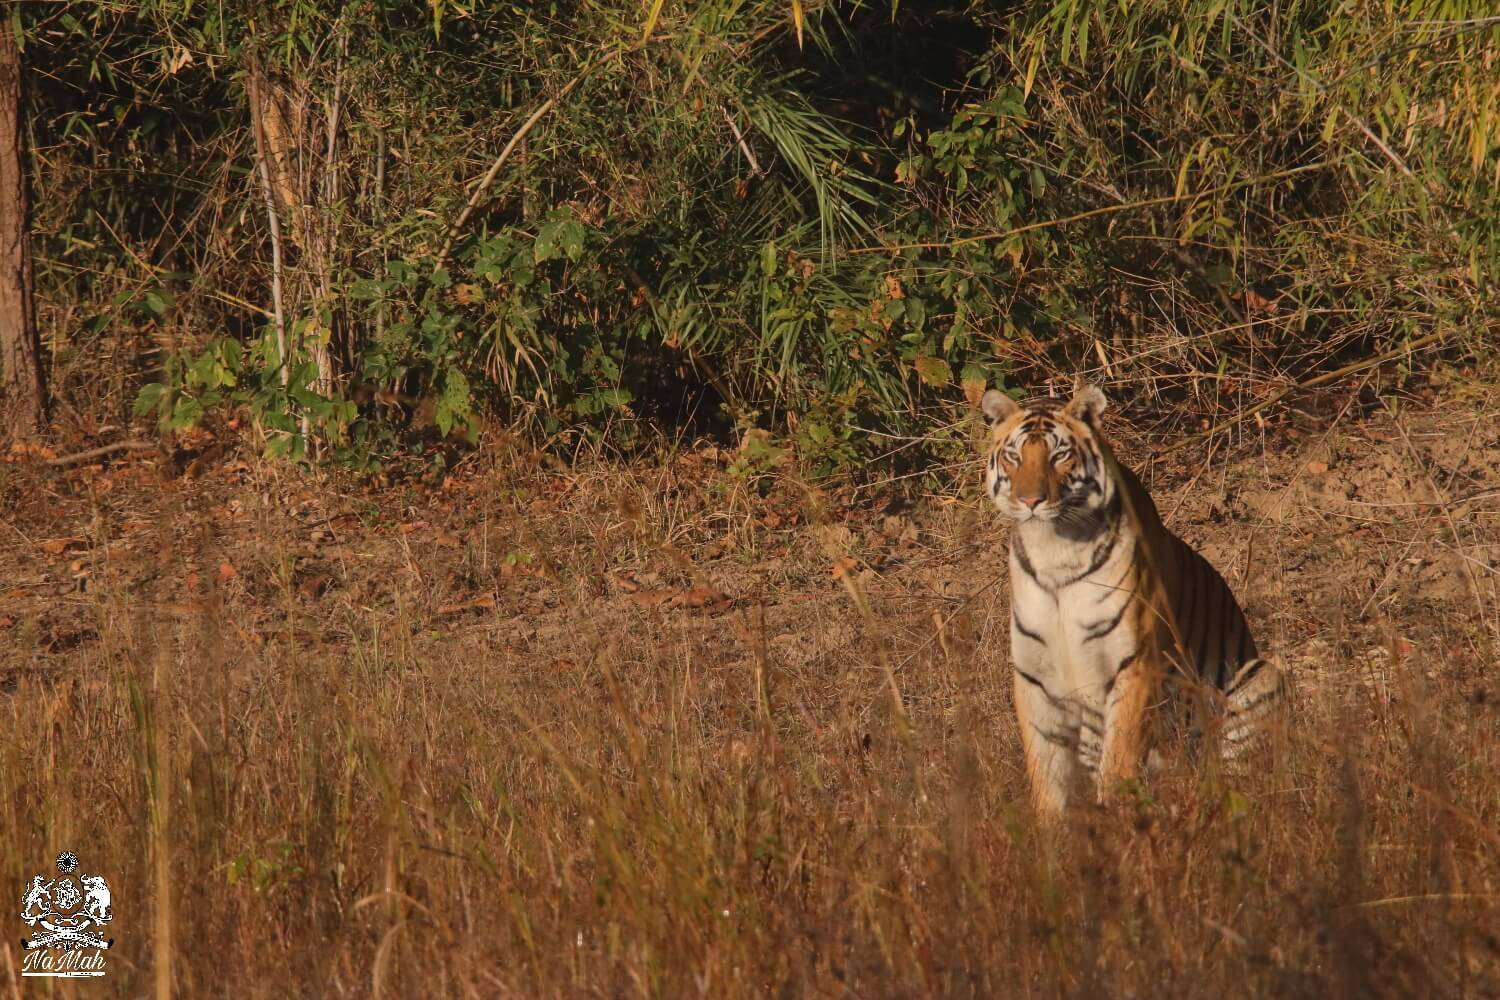 Naina Tiger from Kanha sitting and enjoying early winter morning sun